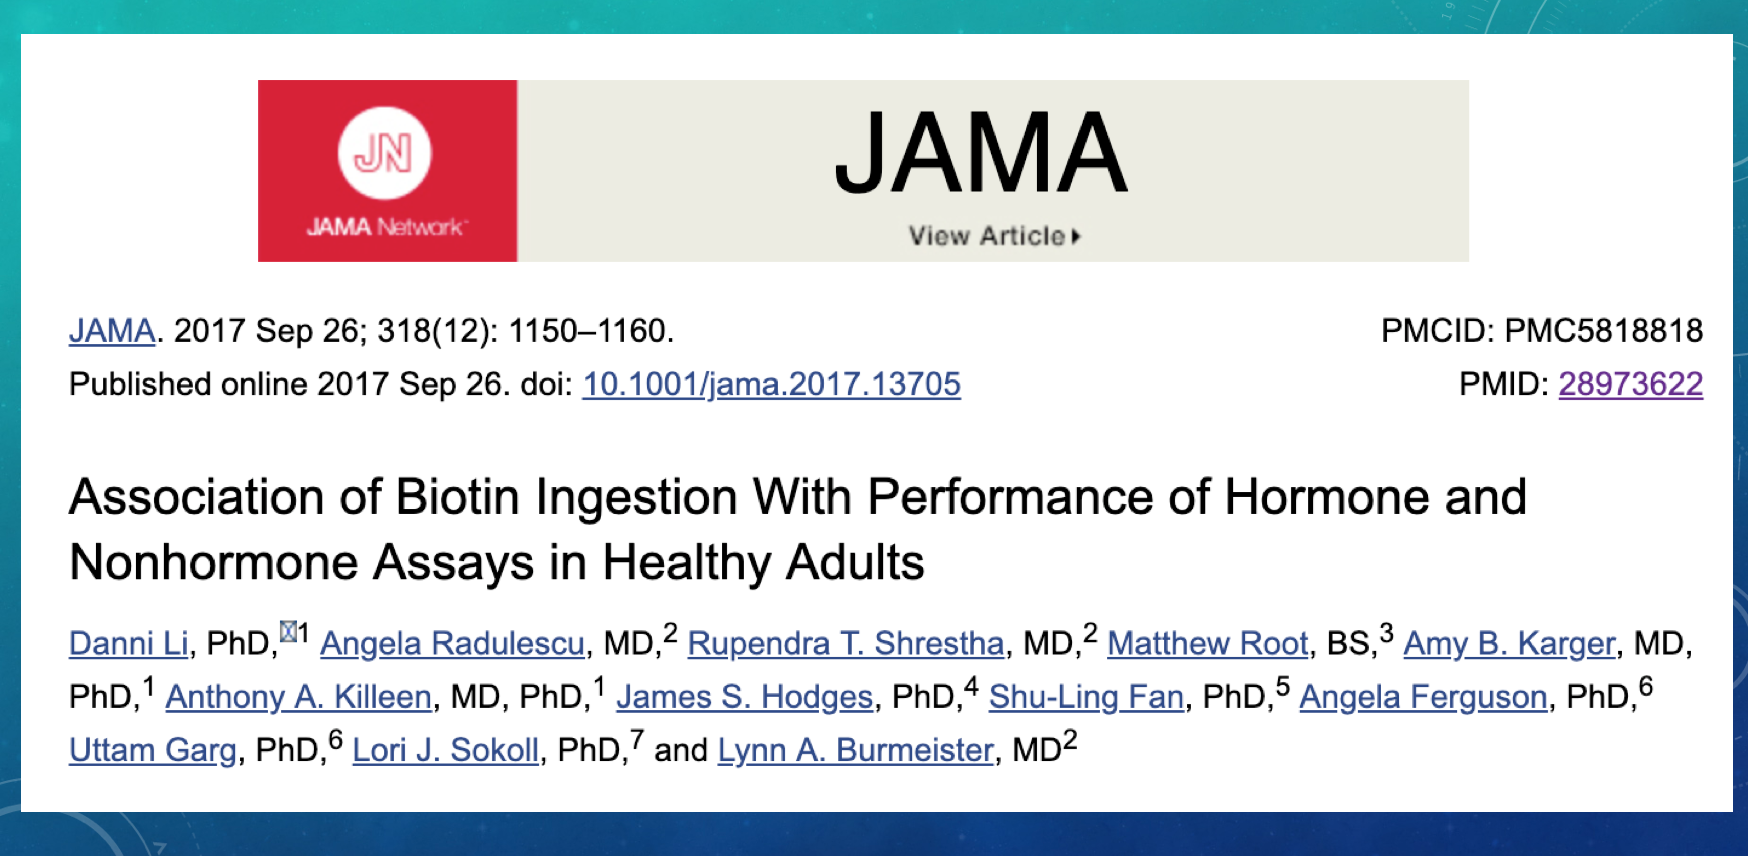 Click here for the link to this excellent article in JAMA about Biotin and Endocrinology Lab Assays